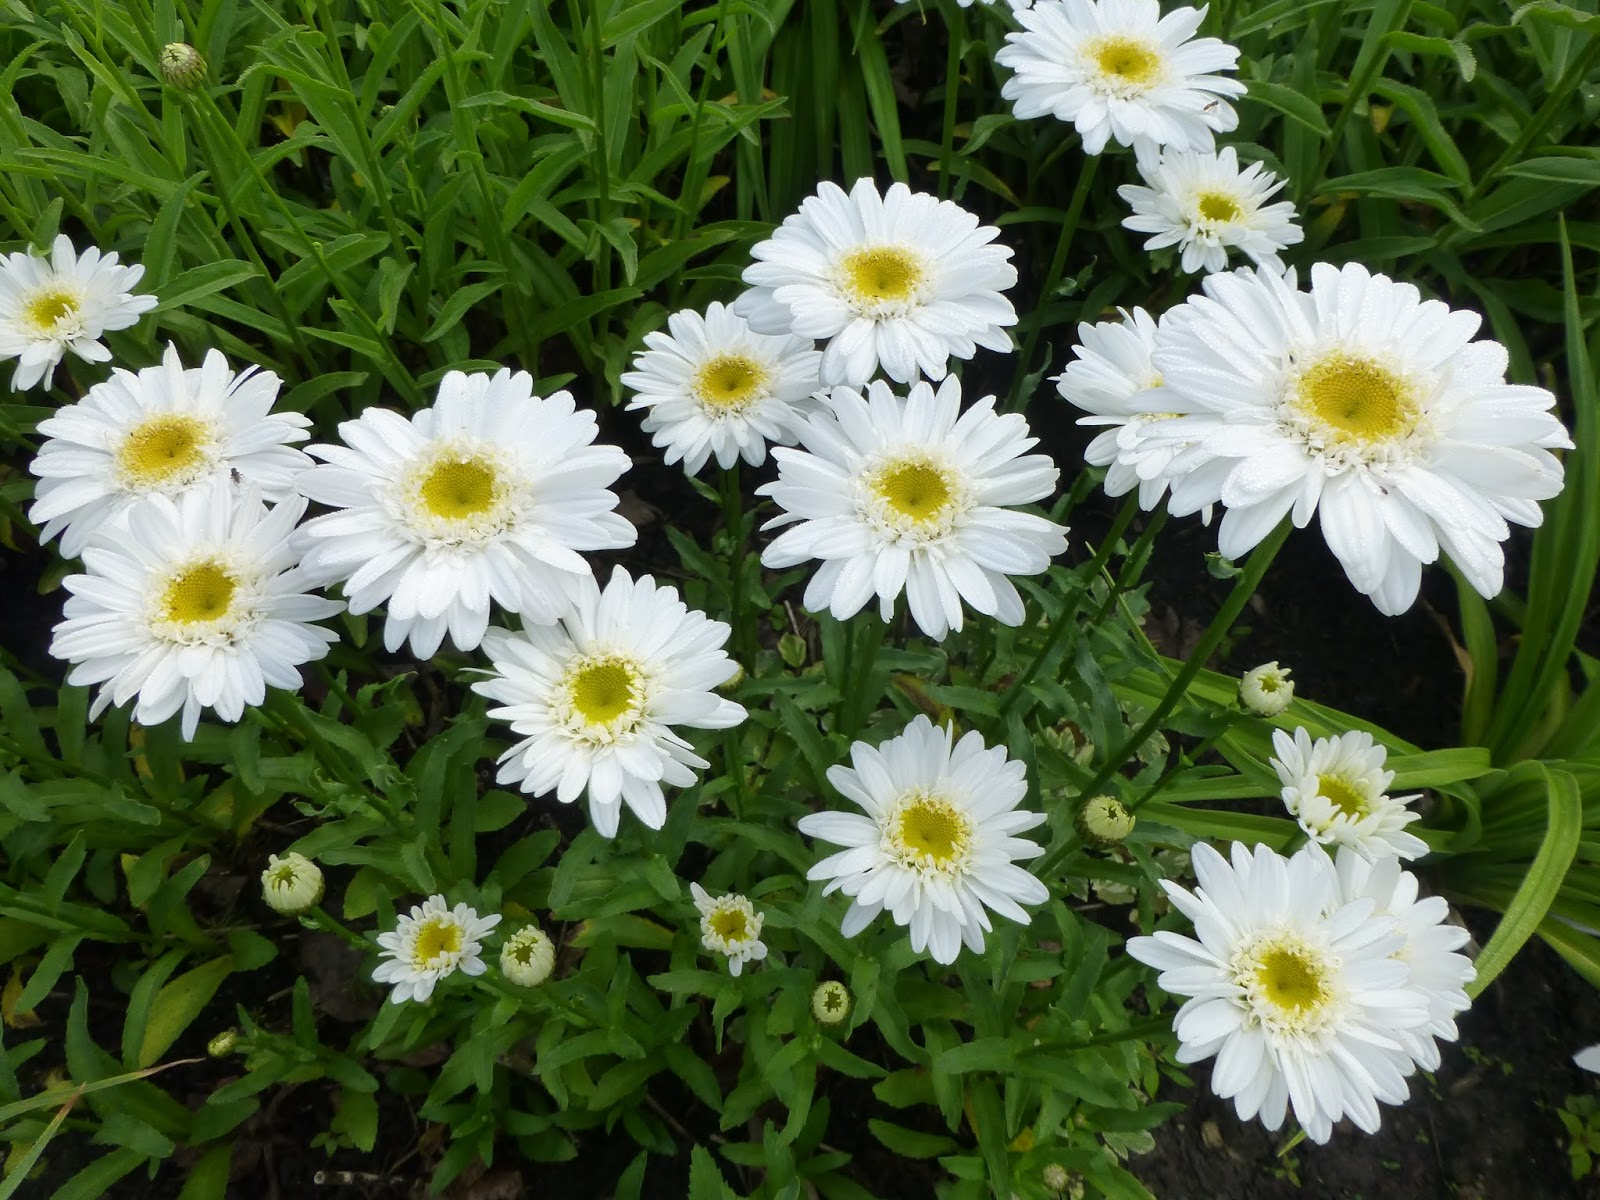 My life in retirement he loves mehe loves me not i love daisies singles doubles tall or short they are just the cheeriest flower izmirmasajfo